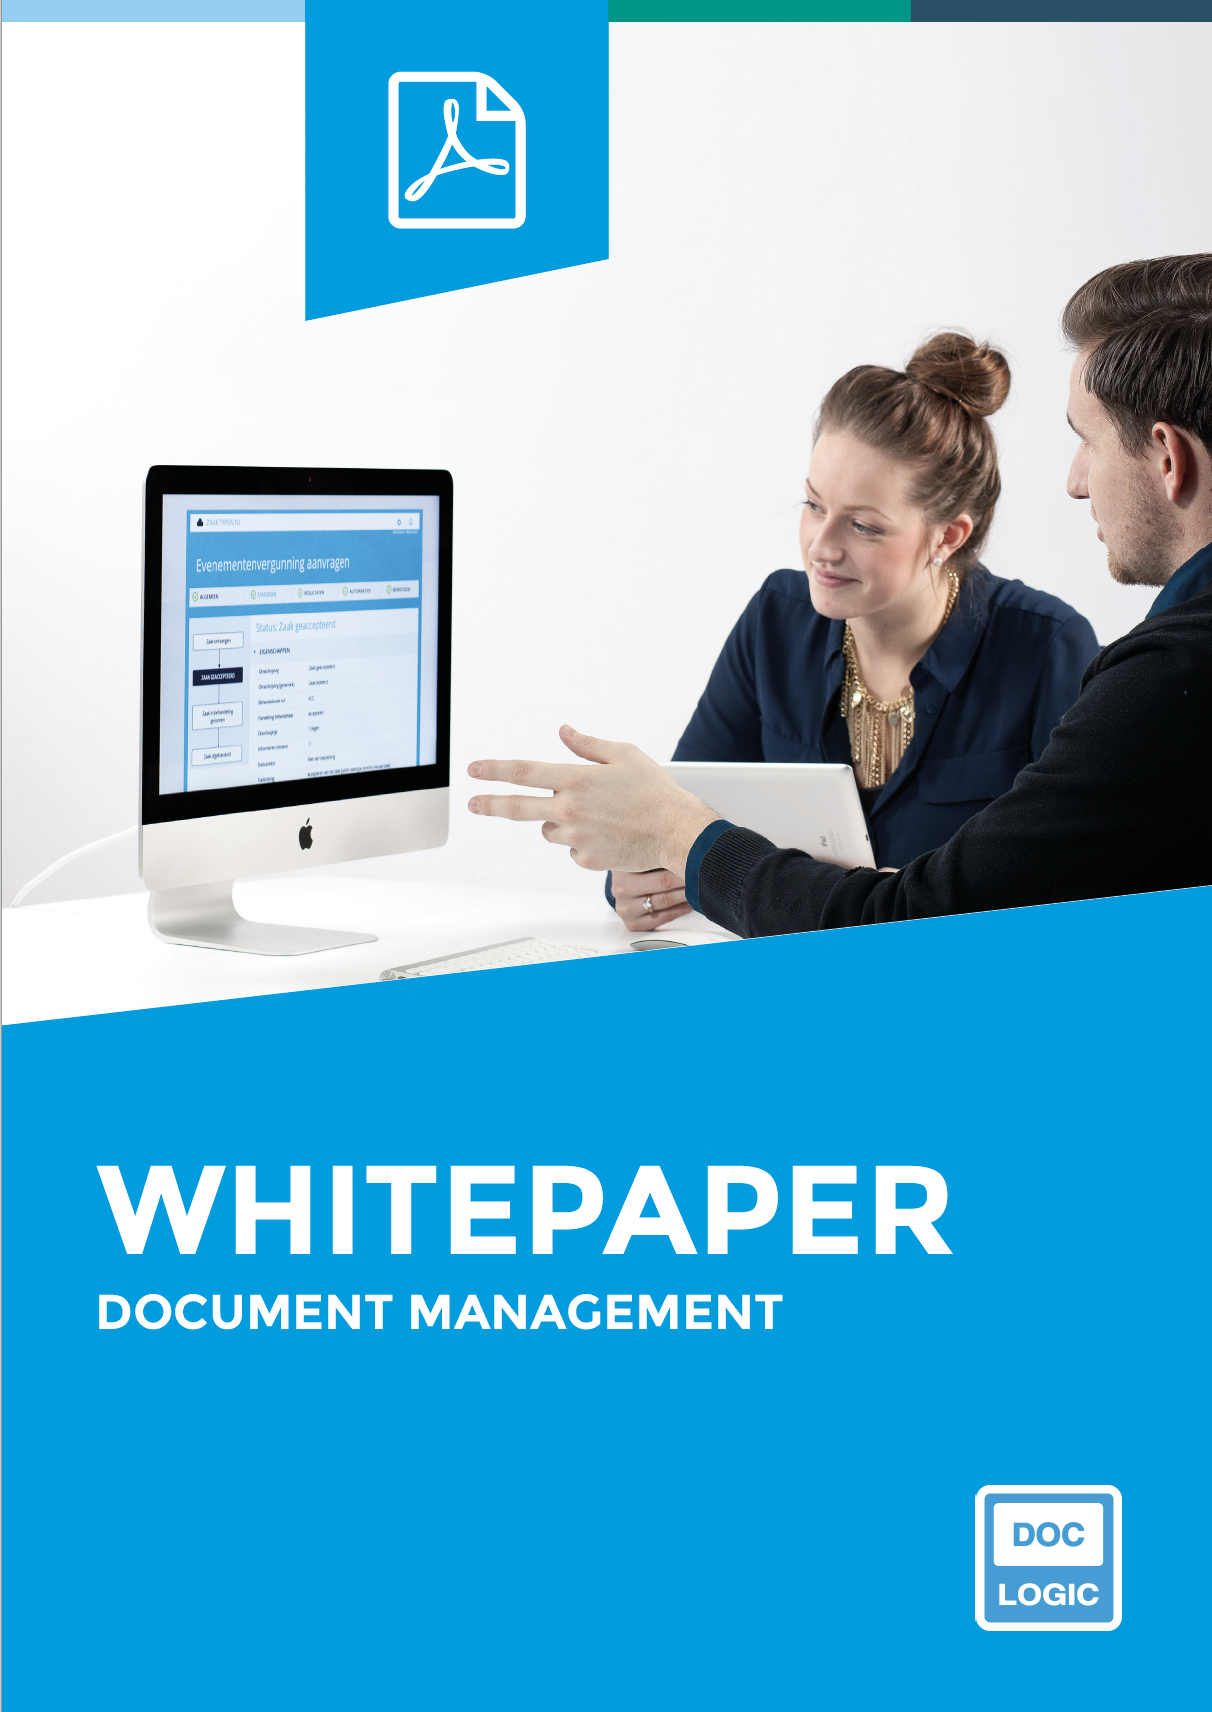 PDF_Document_Management_-_Whitepaper_Voorkant.jpg